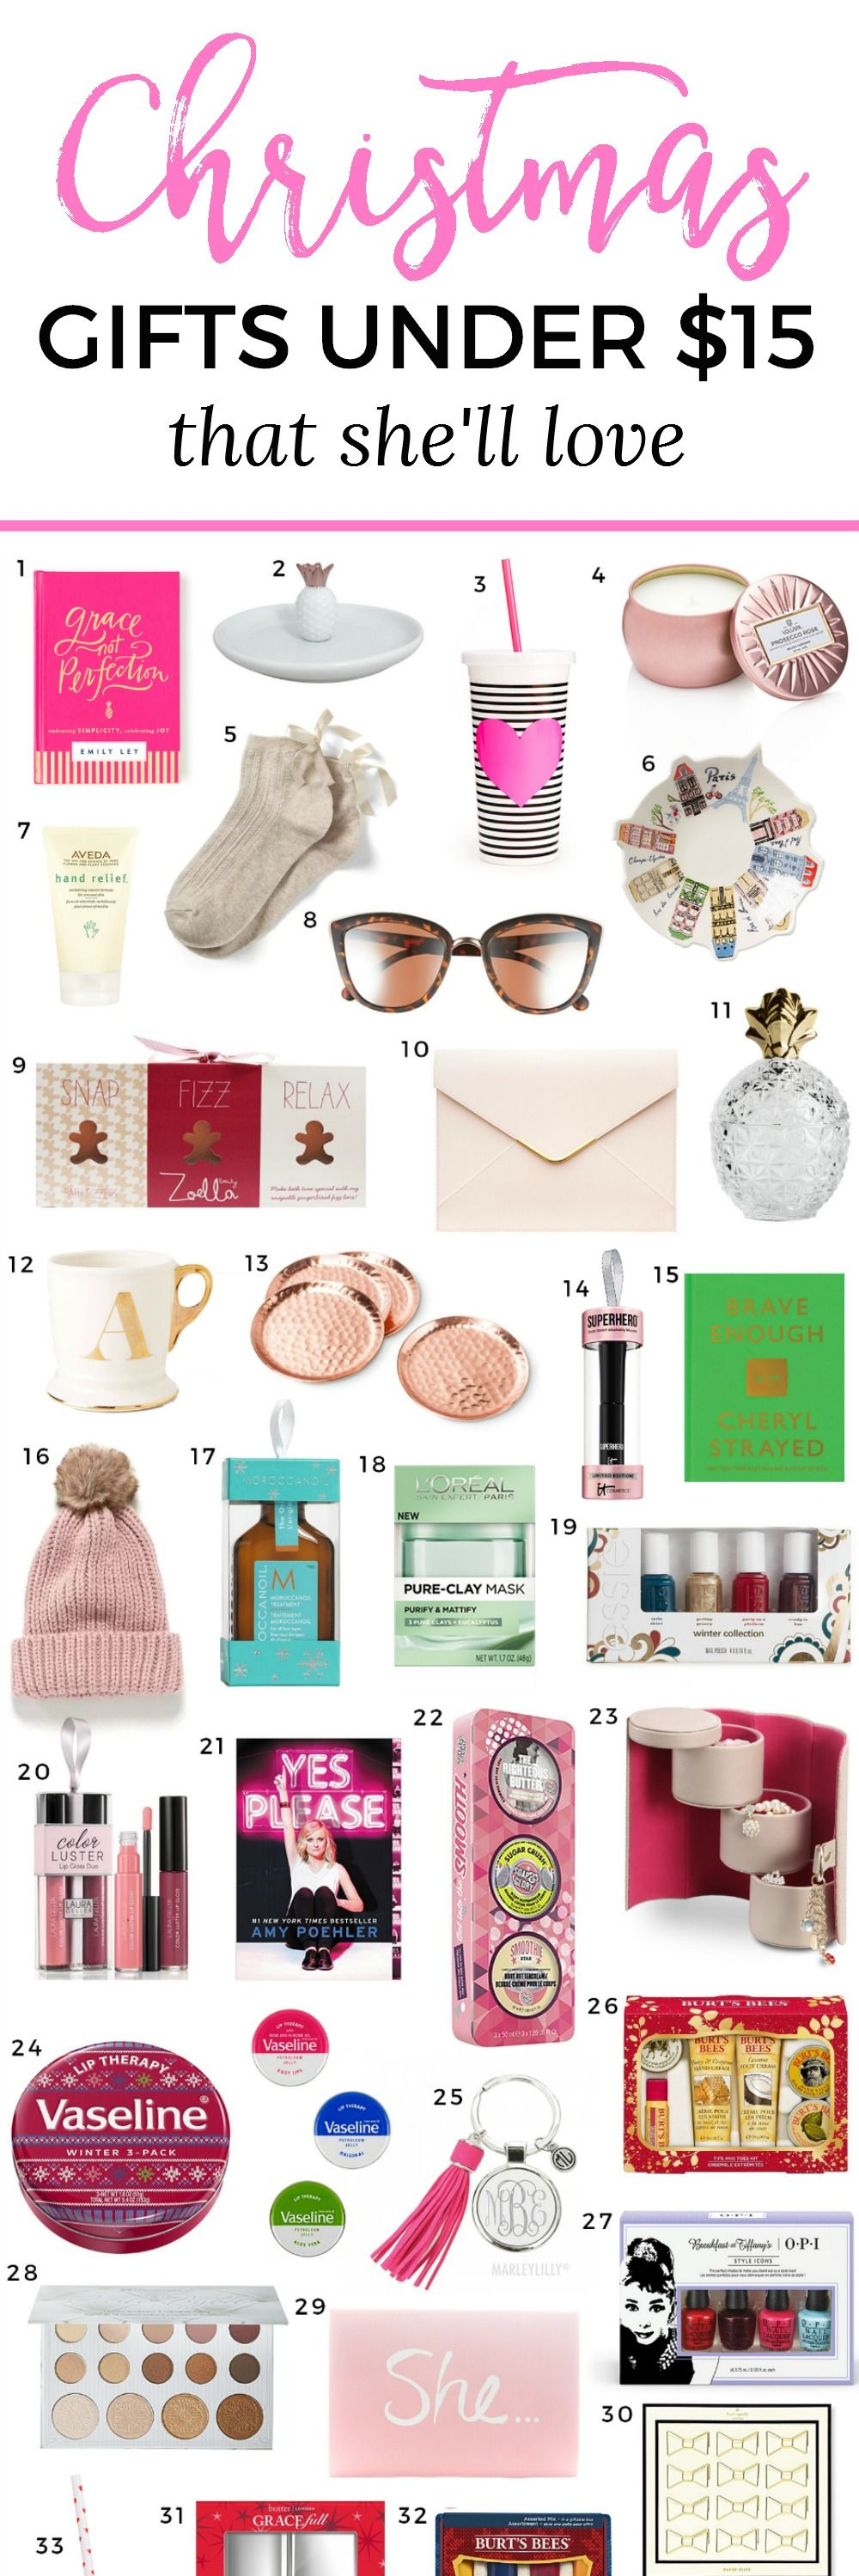 The Best Christmas Gift Ideas for Women Under $15